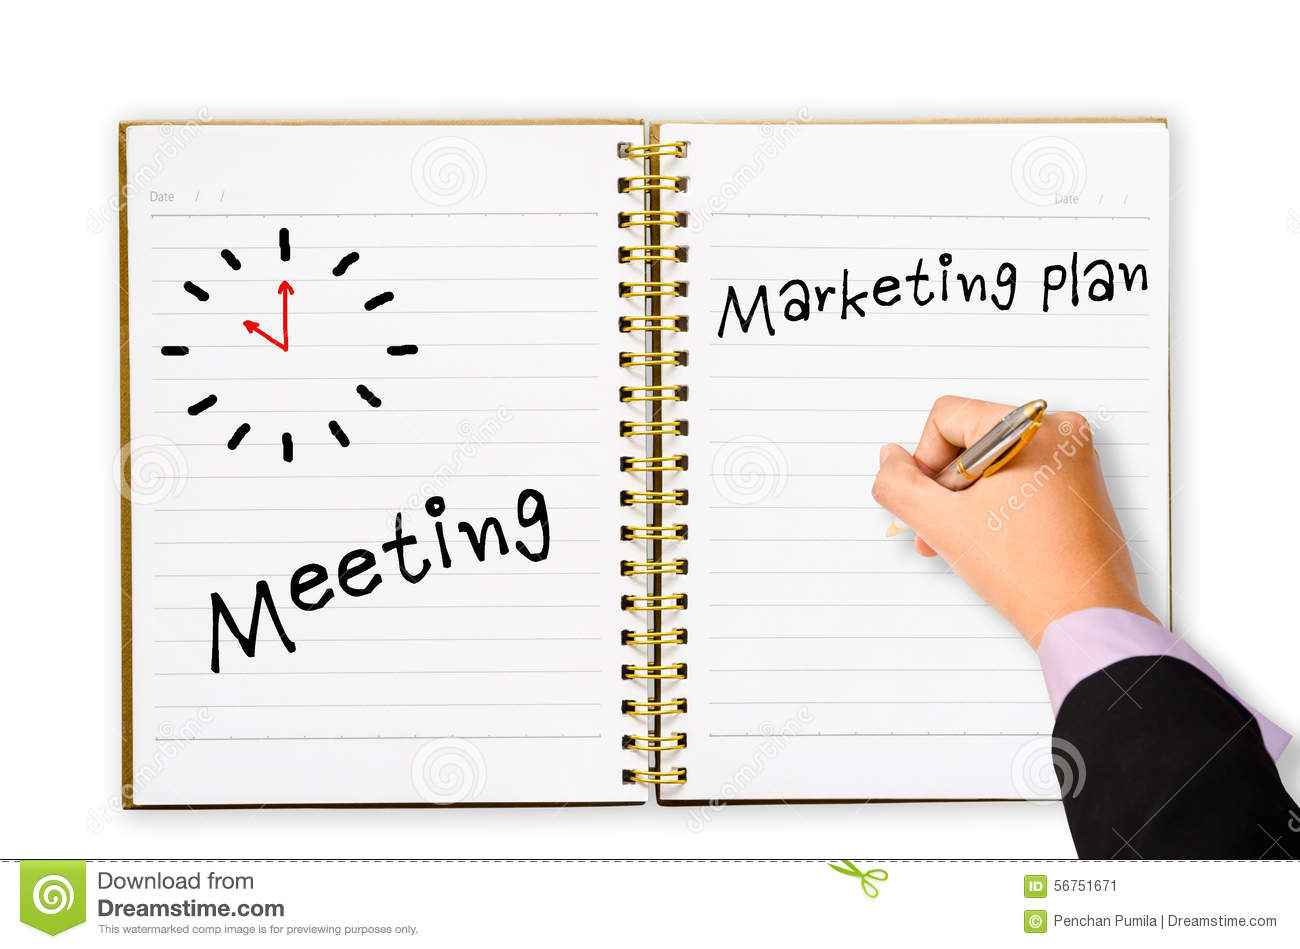 writing a marketing plan A marketing plan is a document that details how a business plans to persuade  people to buy its products or services the executive summary of a marketing  plan.